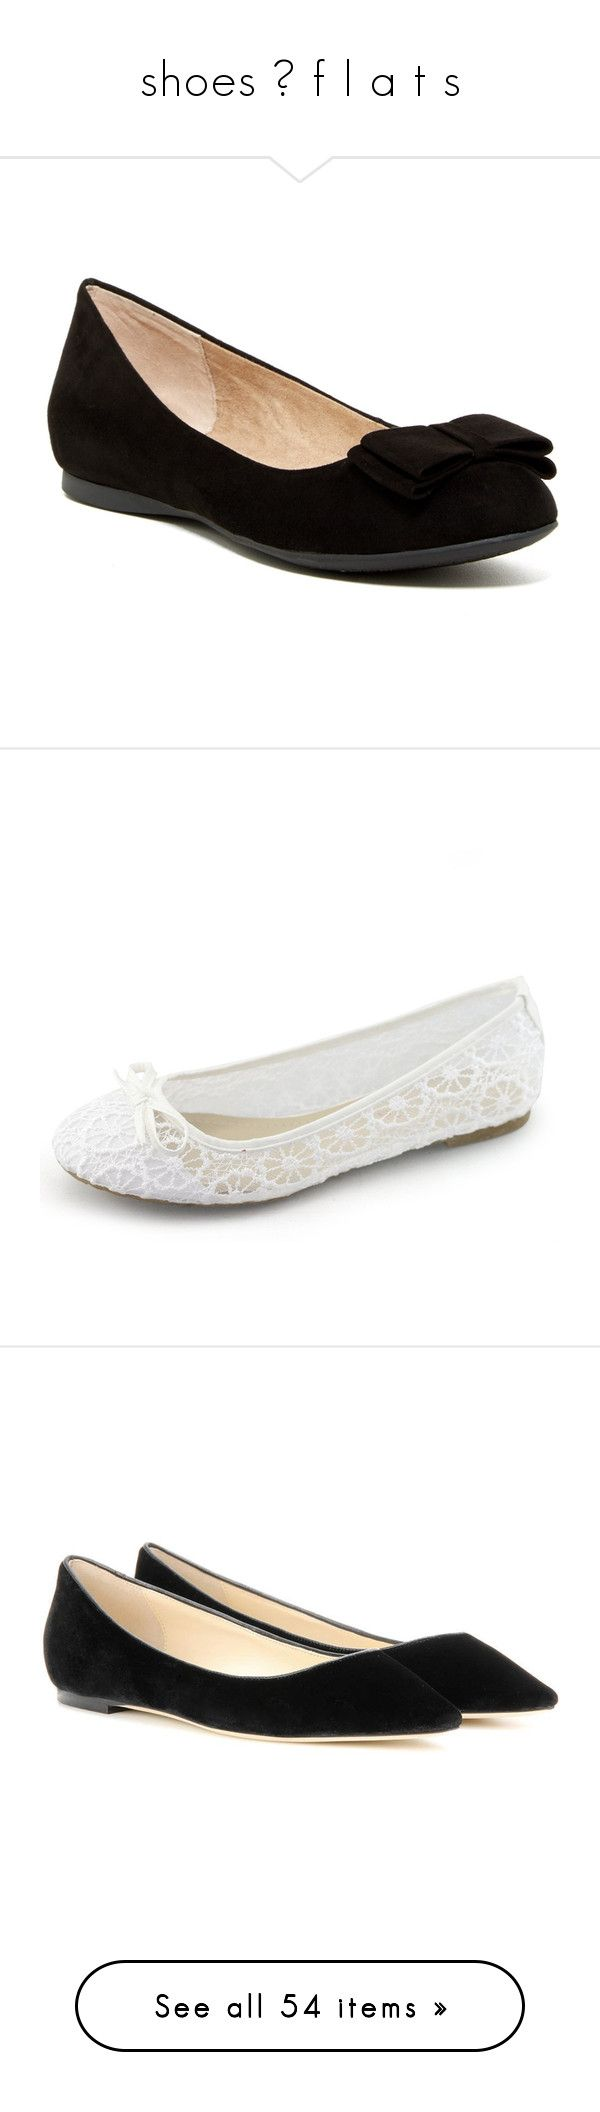 """""""shoes ✦ f l a t s"""" by idontlikeiobsess ❤ liked on Polyvore featuring shoes, flats, round toe ballet flats, ballerina pumps, flat pumps, slip-on shoes, bow shoes, ballet pumps, floral print flats and floral flats"""